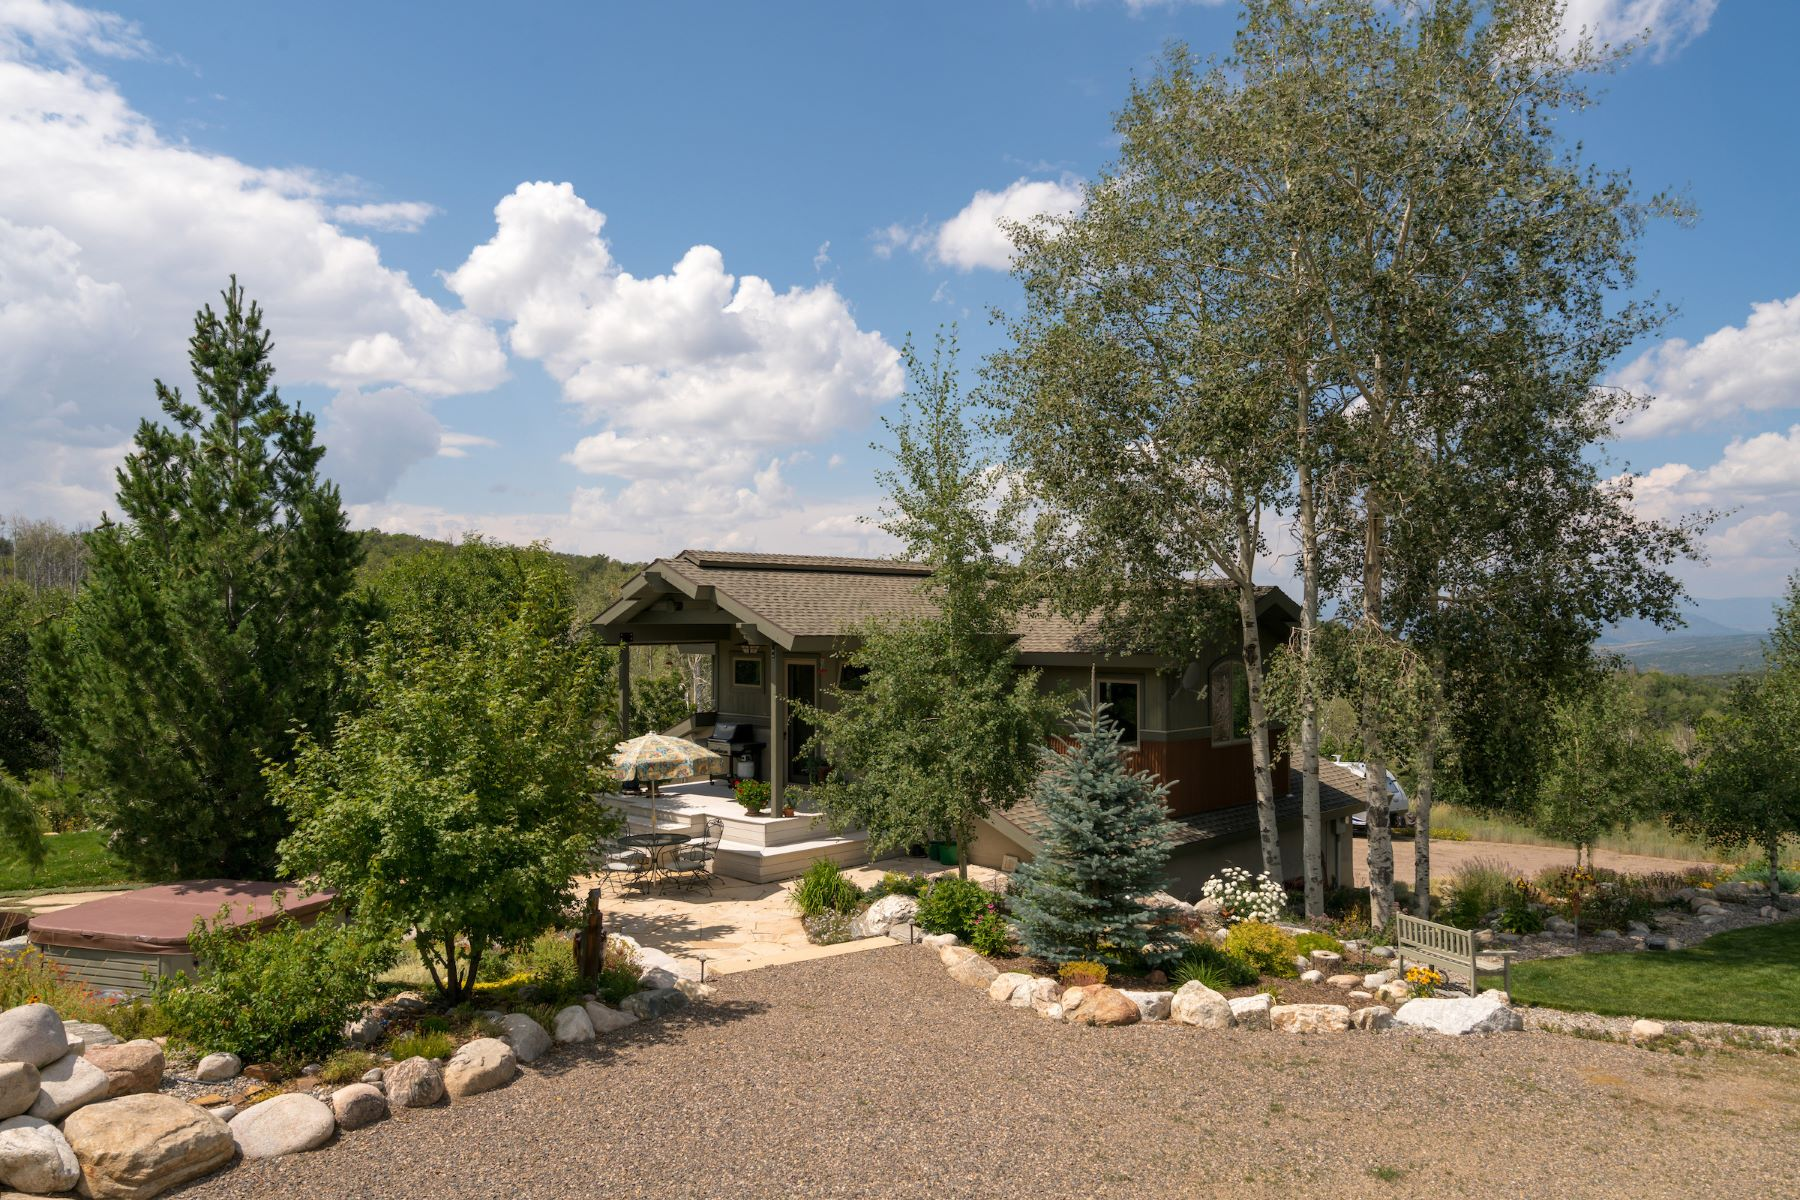 Additional photo for property listing at Whitewood Home 22015 Whitewood Drive W Steamboat Springs, Colorado 80487 United States